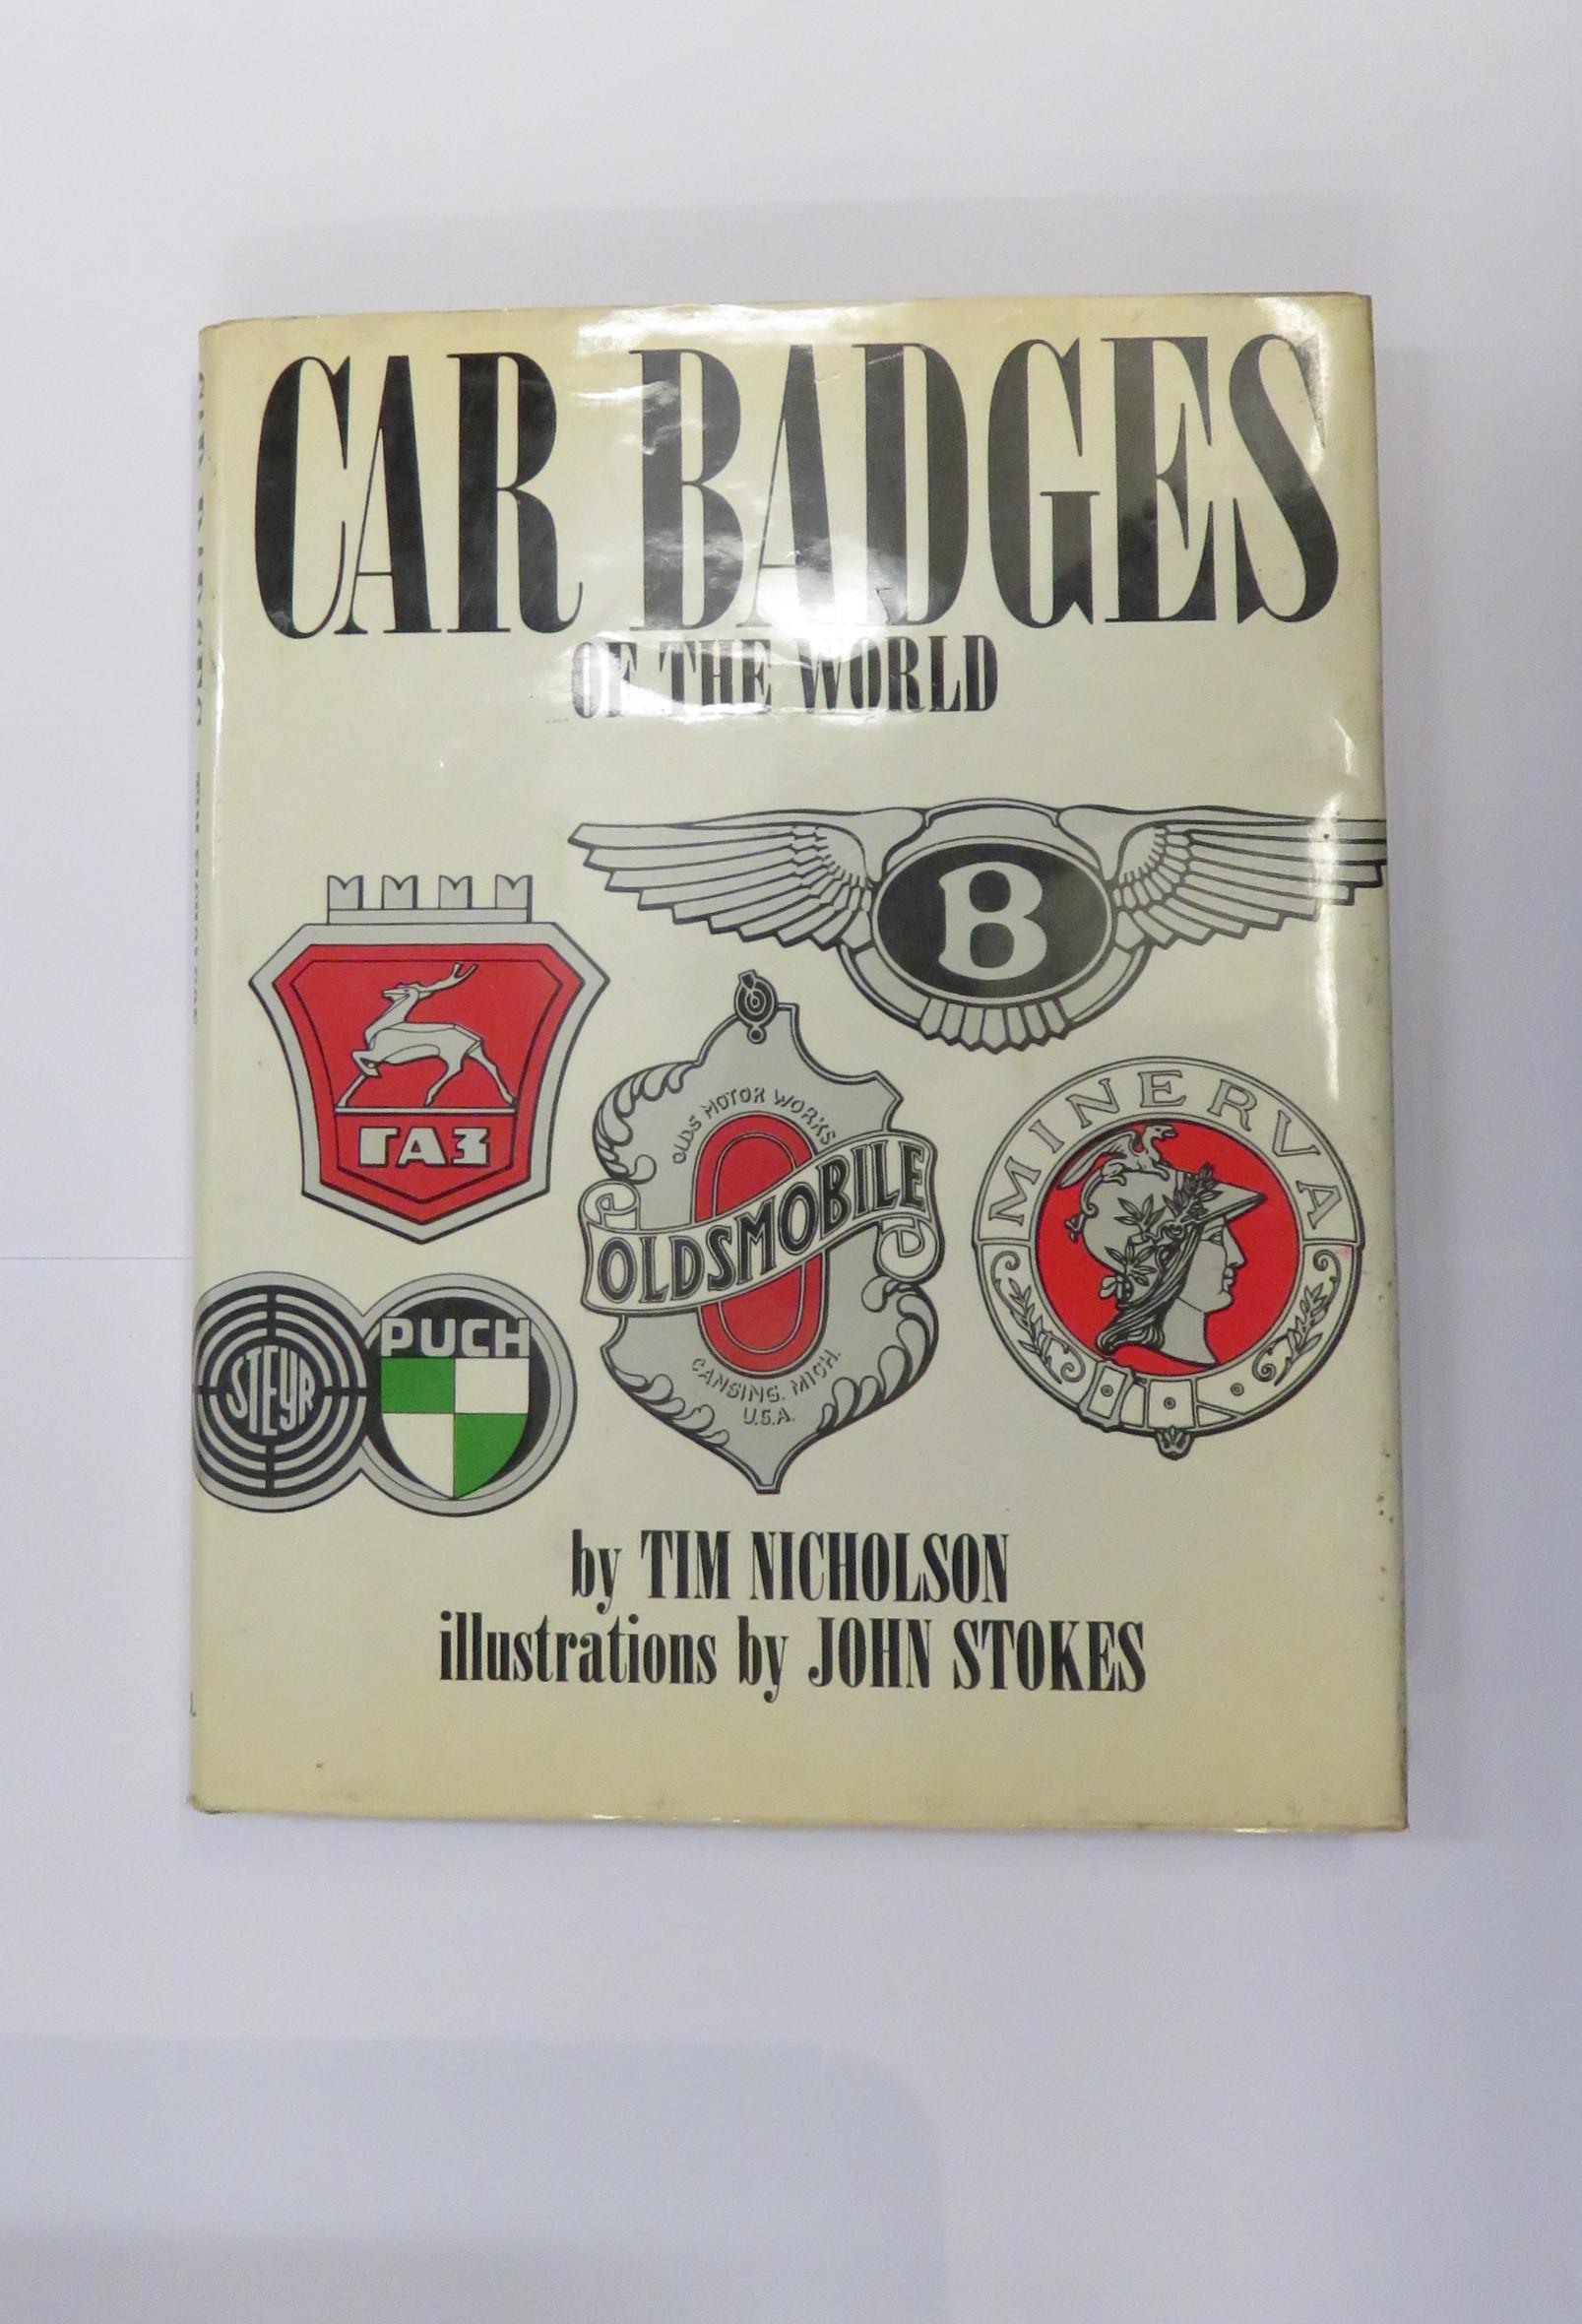 Car Badges of the World